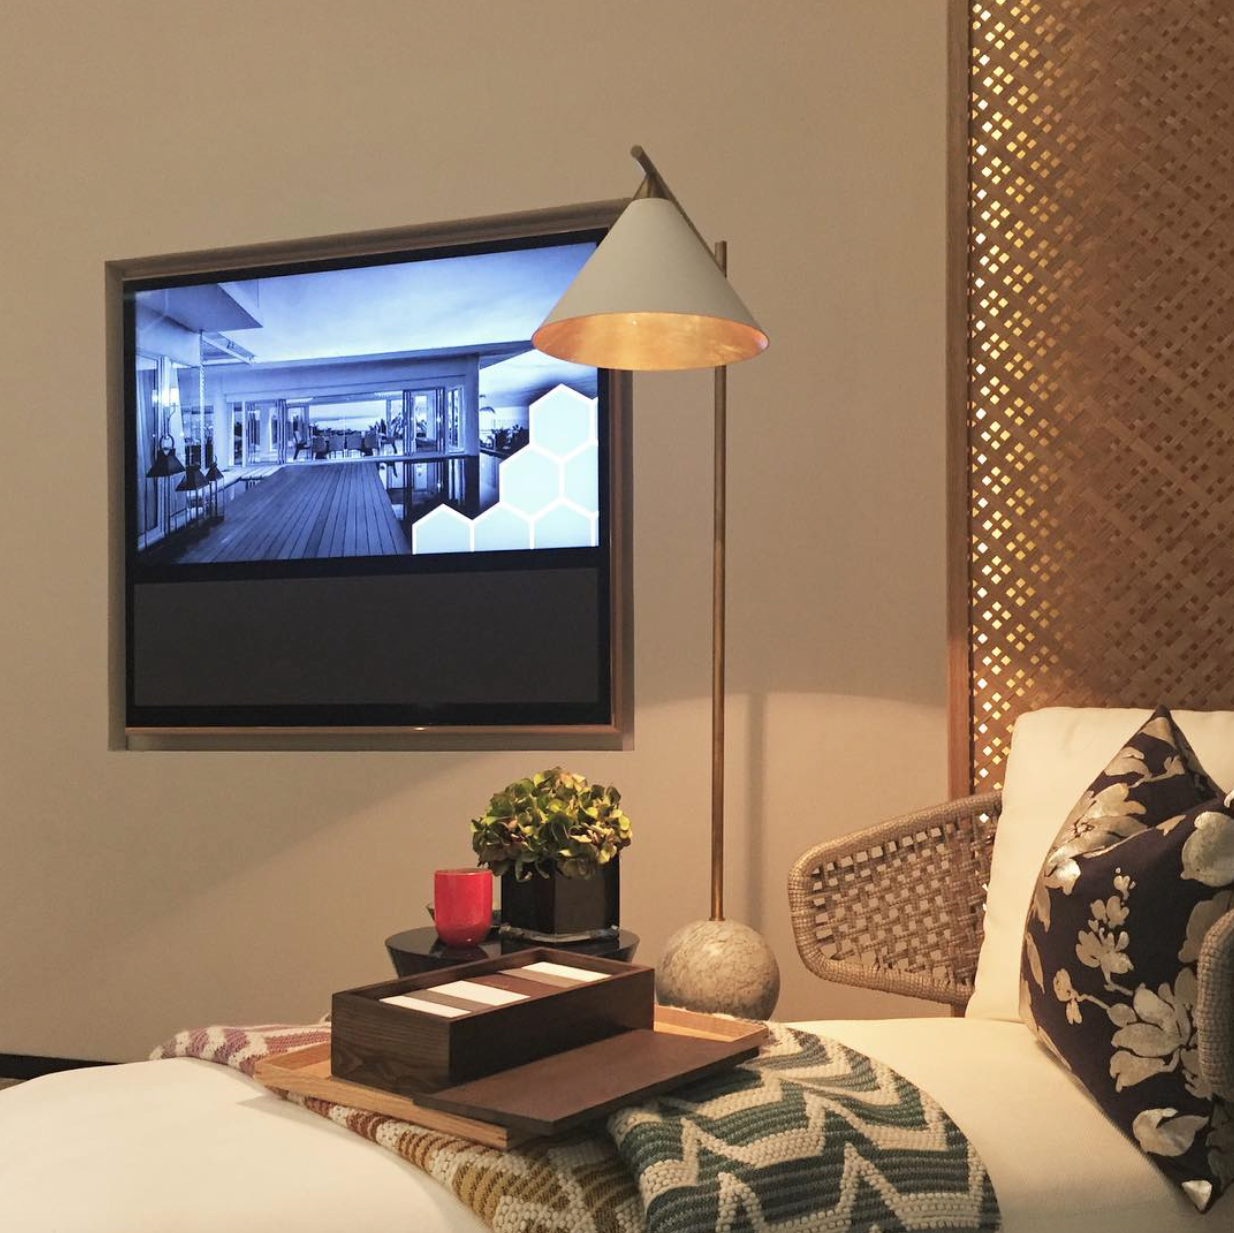 Cozy Interior With Beovision 11 Shared By Alsanisidik On Instagram  # Meuble Tv Goya